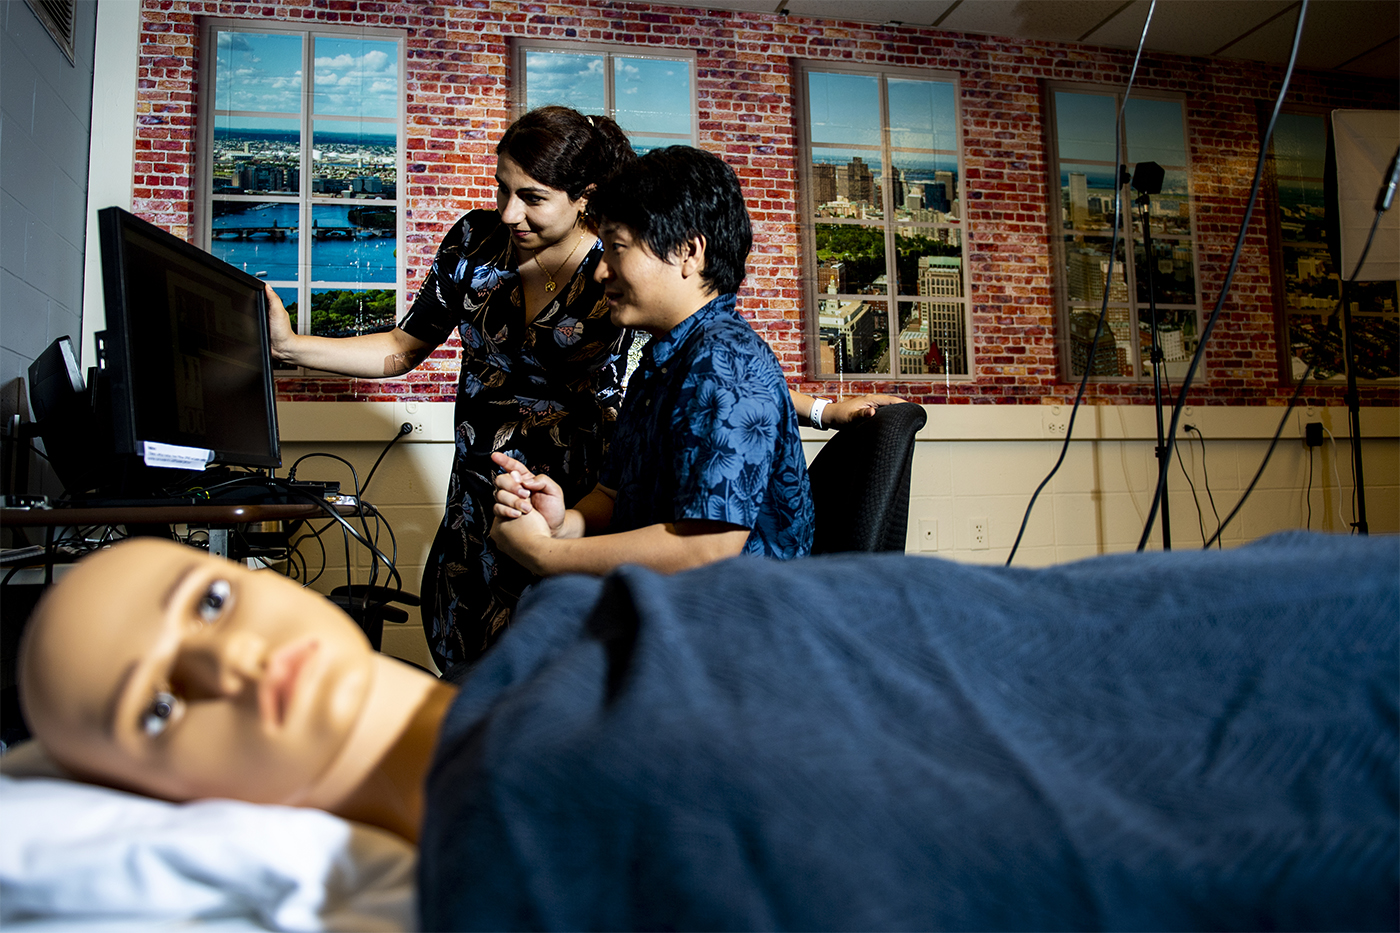 professor and researcher looking at monitor with manikin in bed